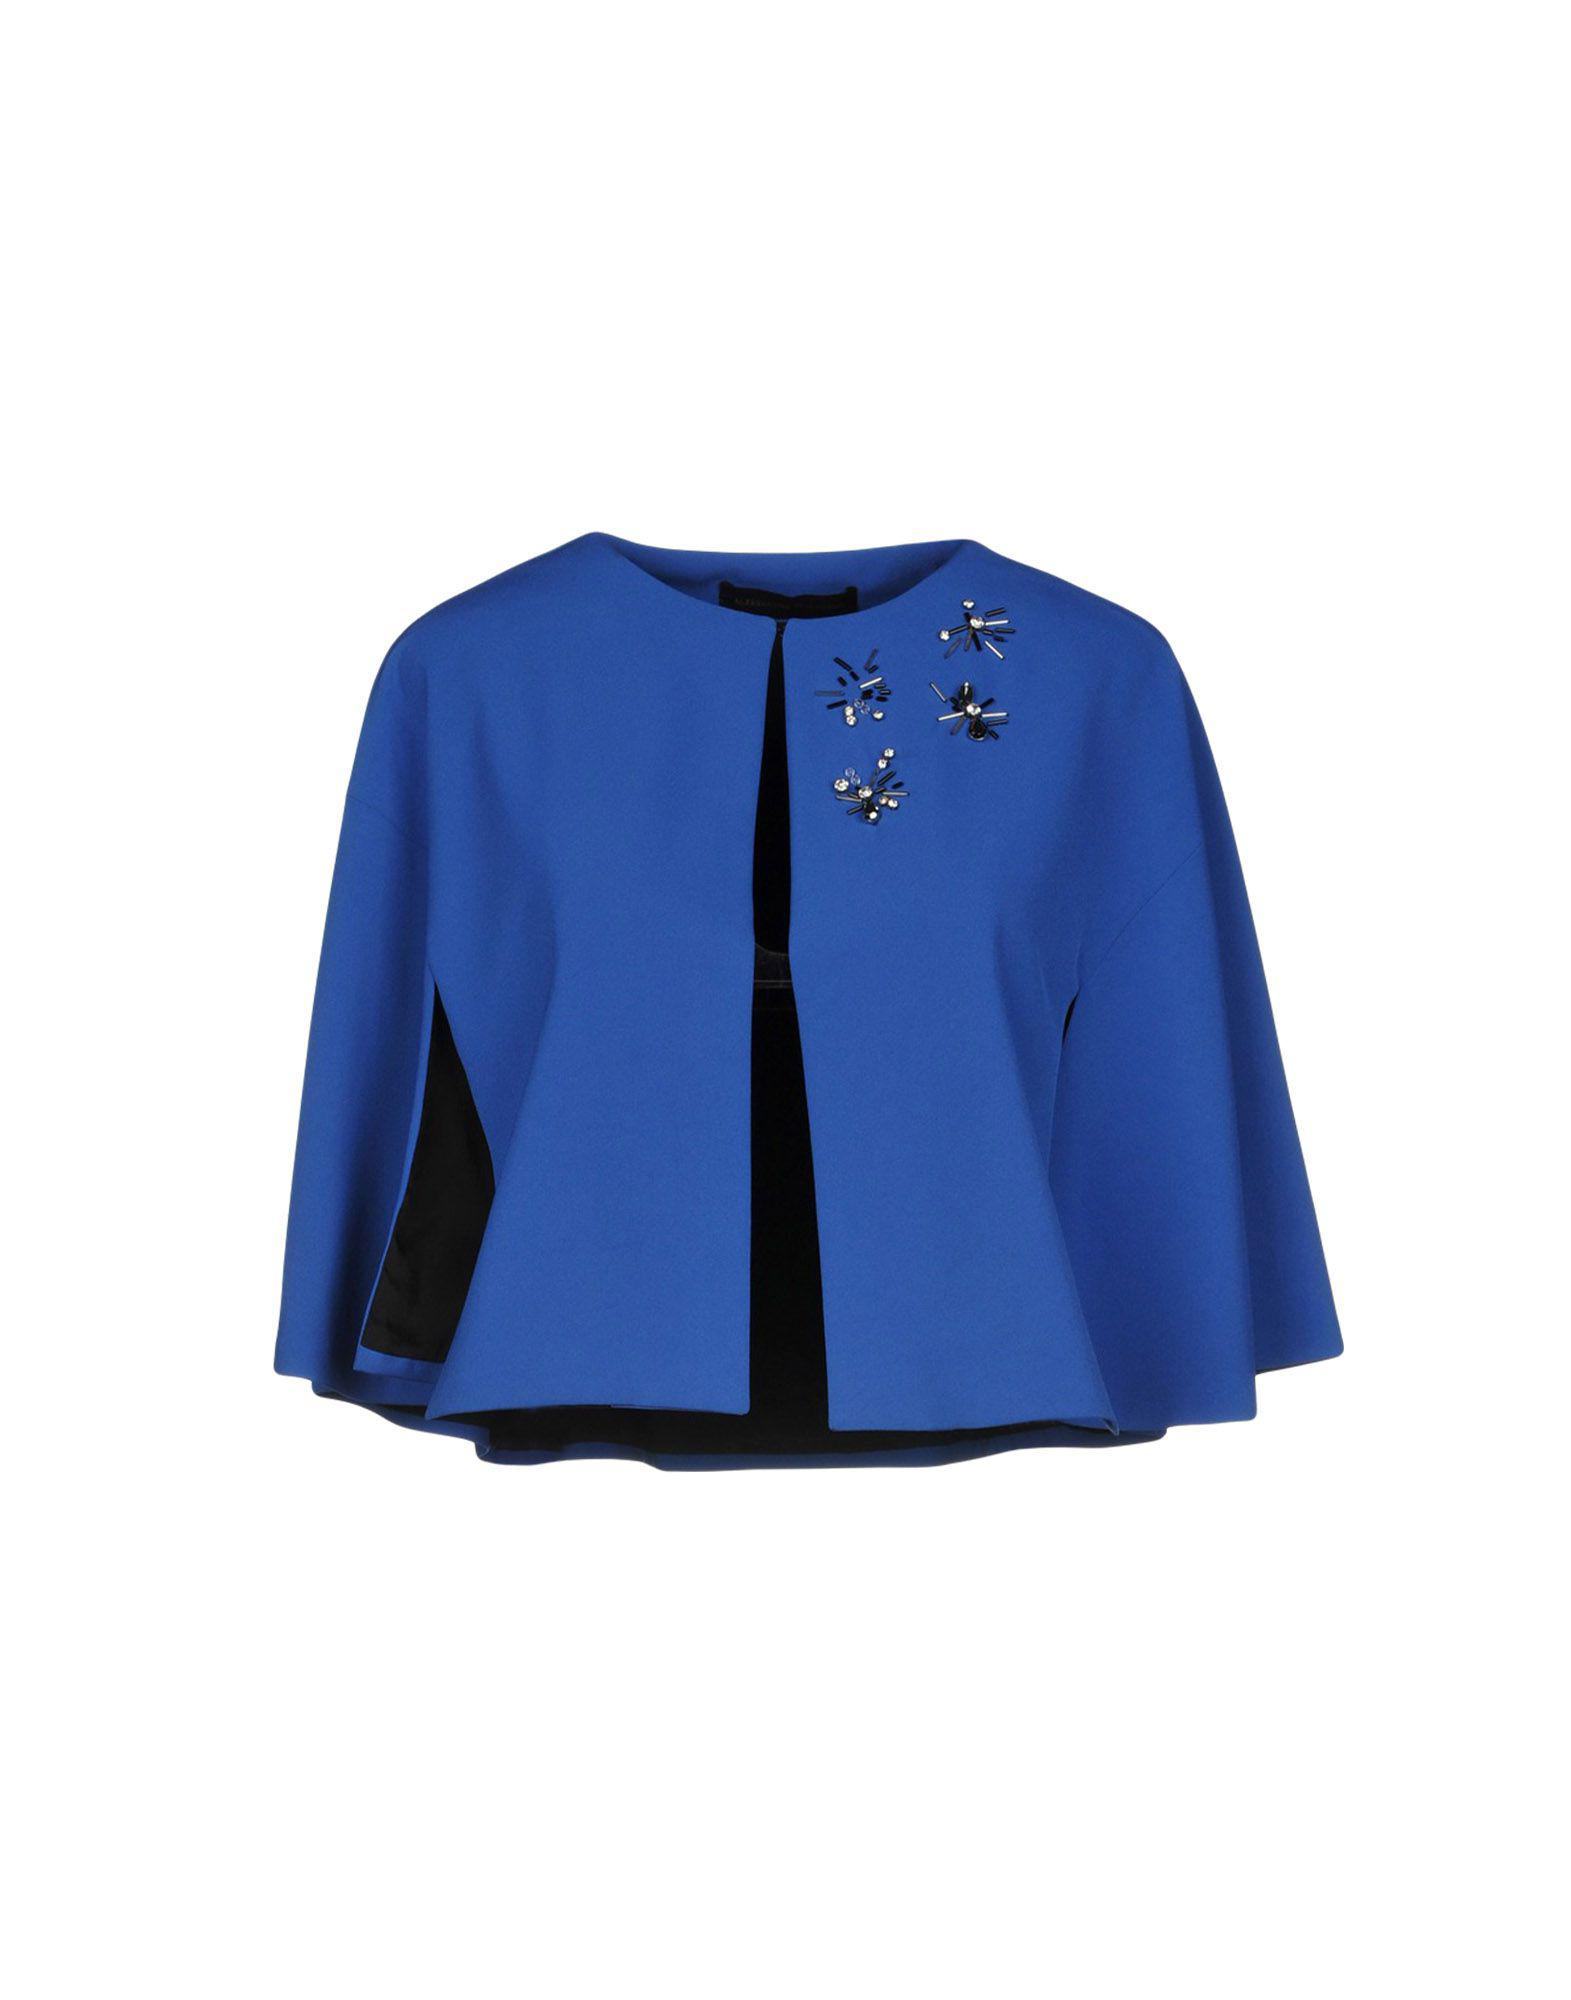 COATS & JACKETS - Capes & ponchos Alessandro Dell´Acqua Cheap Recommend Clearance Comfortable New Cheap Online From China Low Shipping Fee Clearance Low Cost FcMwH8ons